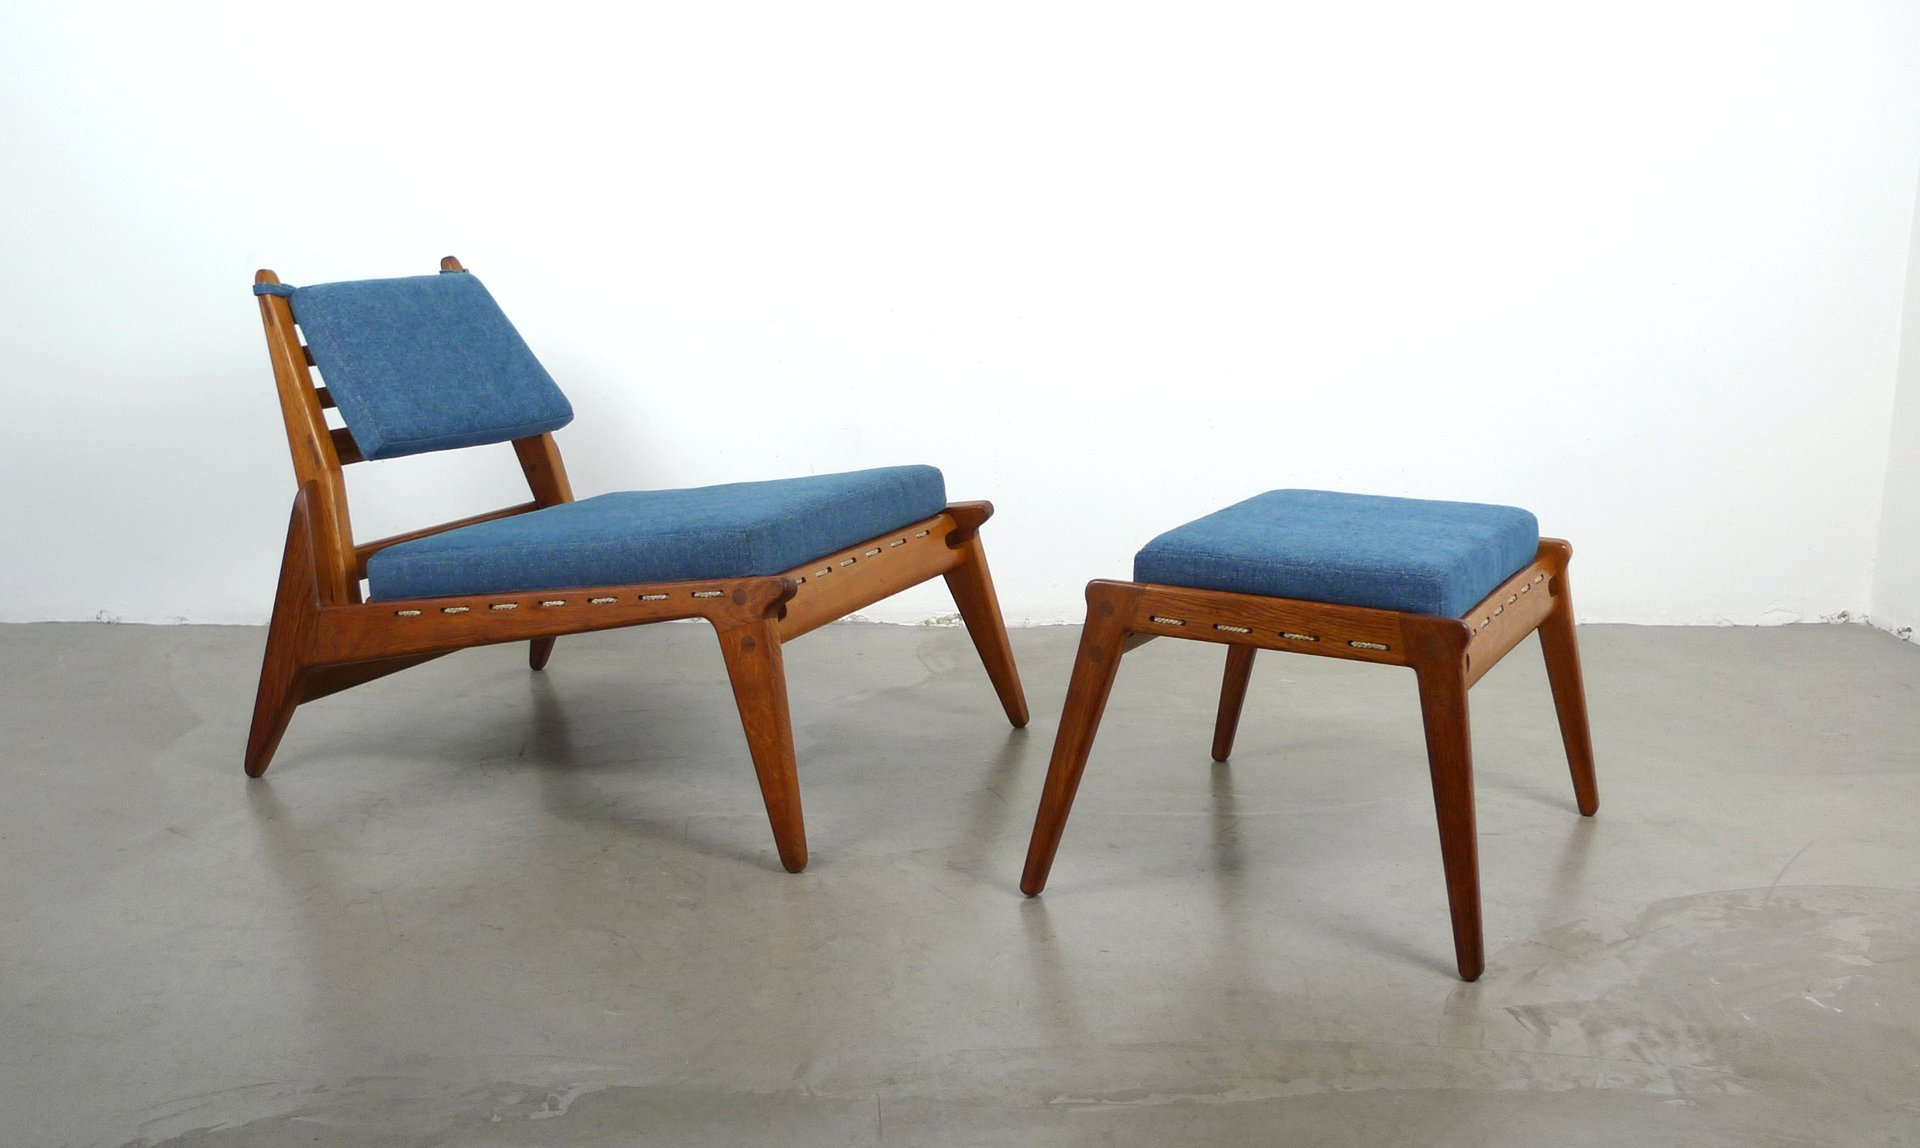 Vintage German Low Lounge Chair with Ottoman 1950s for sale at Pamono